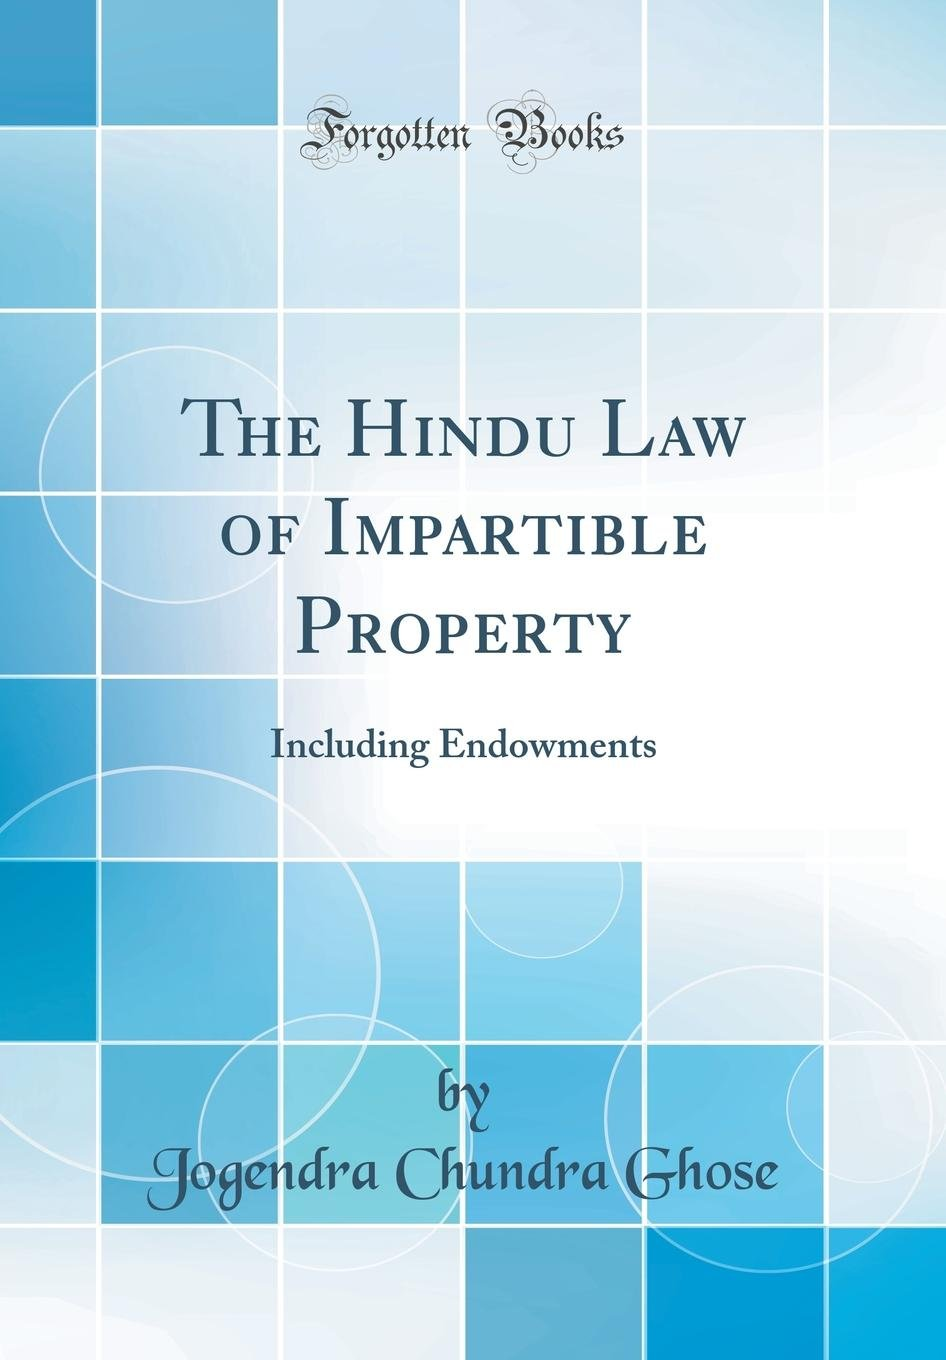 The Hindu Law of Impartible Property: Including Endowments (Classic Reprint) ebook